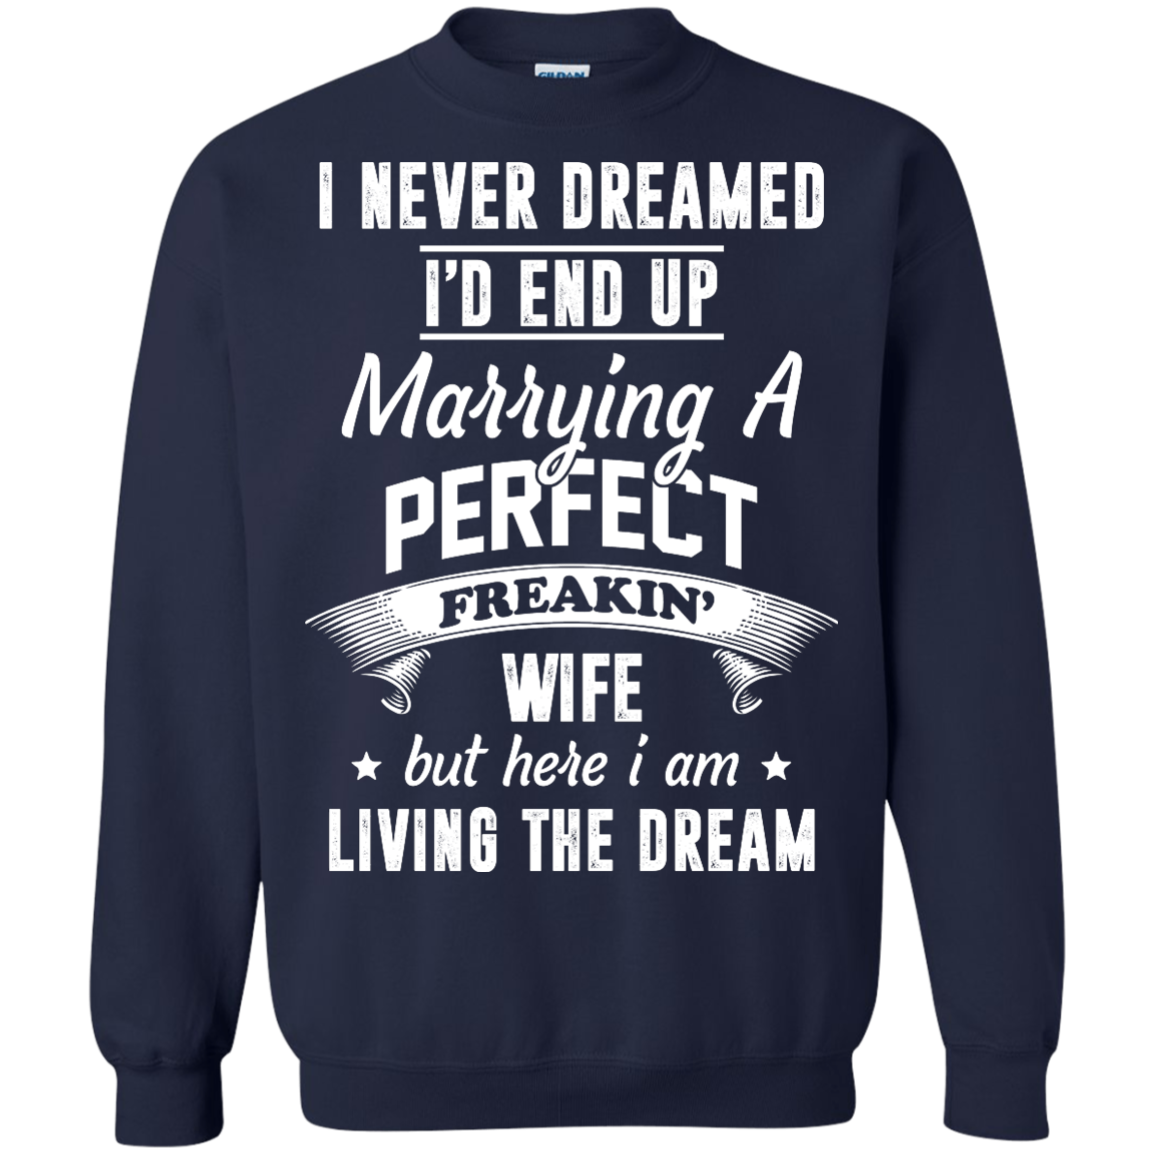 I Never Dreamed I'd End Up Marrying Perfect Freakin'Wife But Here I Am Living The Dream t shirt,tank,hoodie,sweater